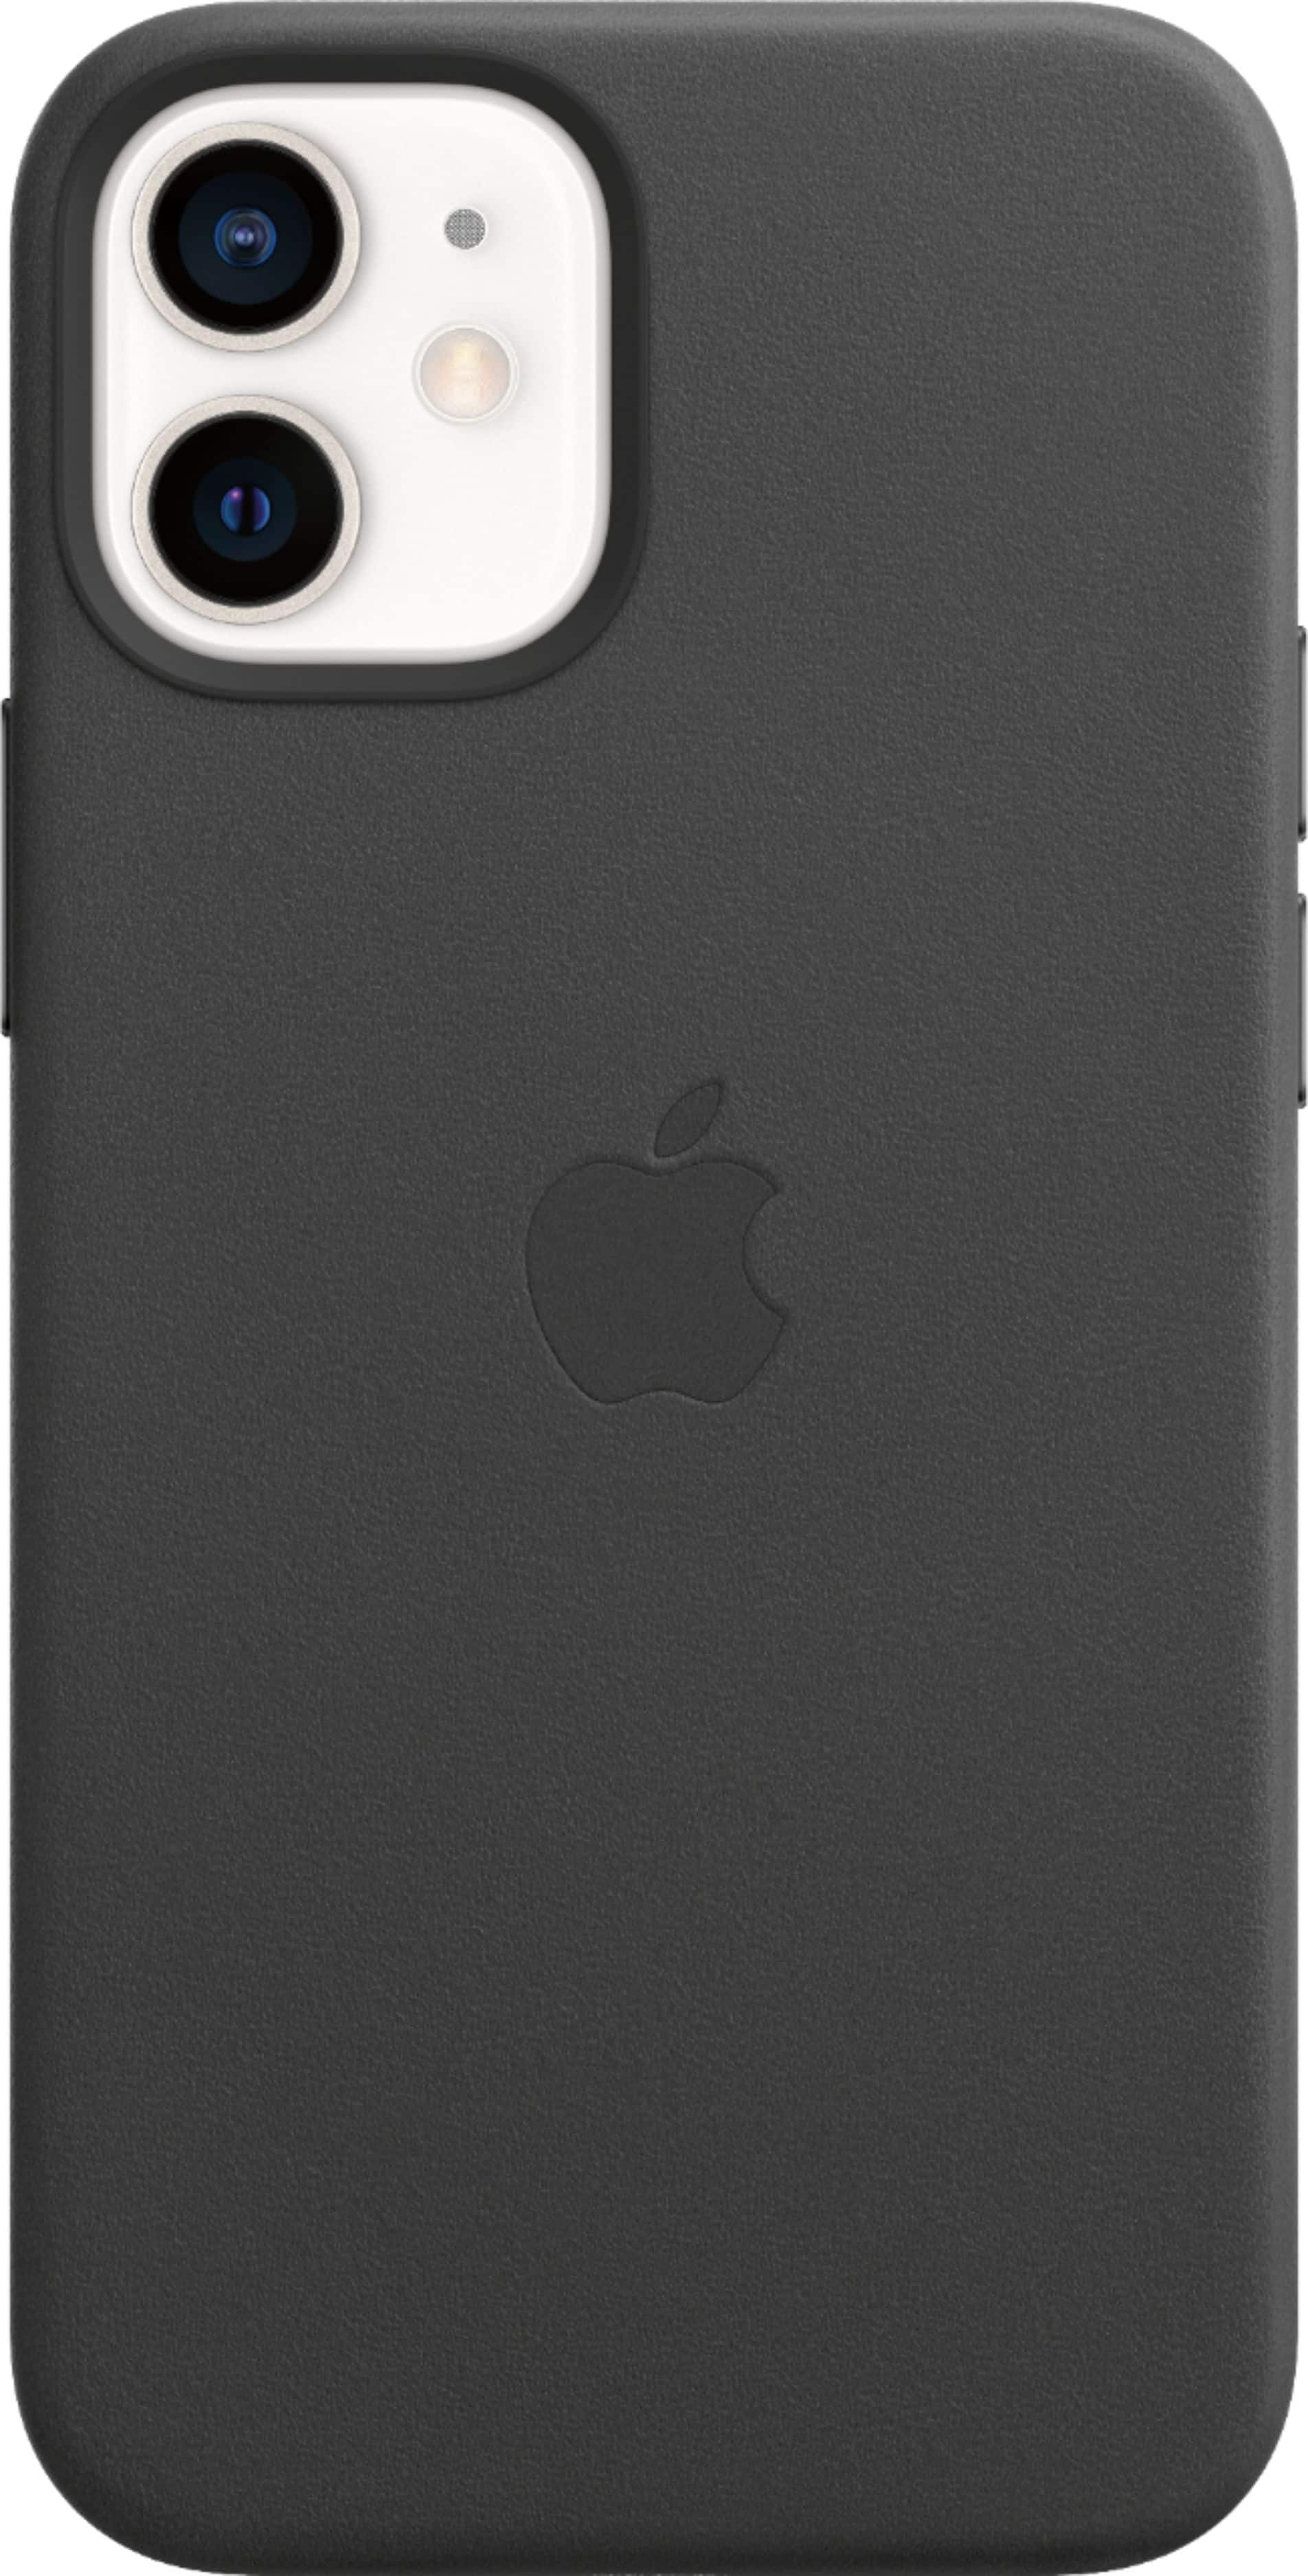 Apple Leather Case with MagSafe for iPhone 12 Mini - Black - $23.99 at Best Buy